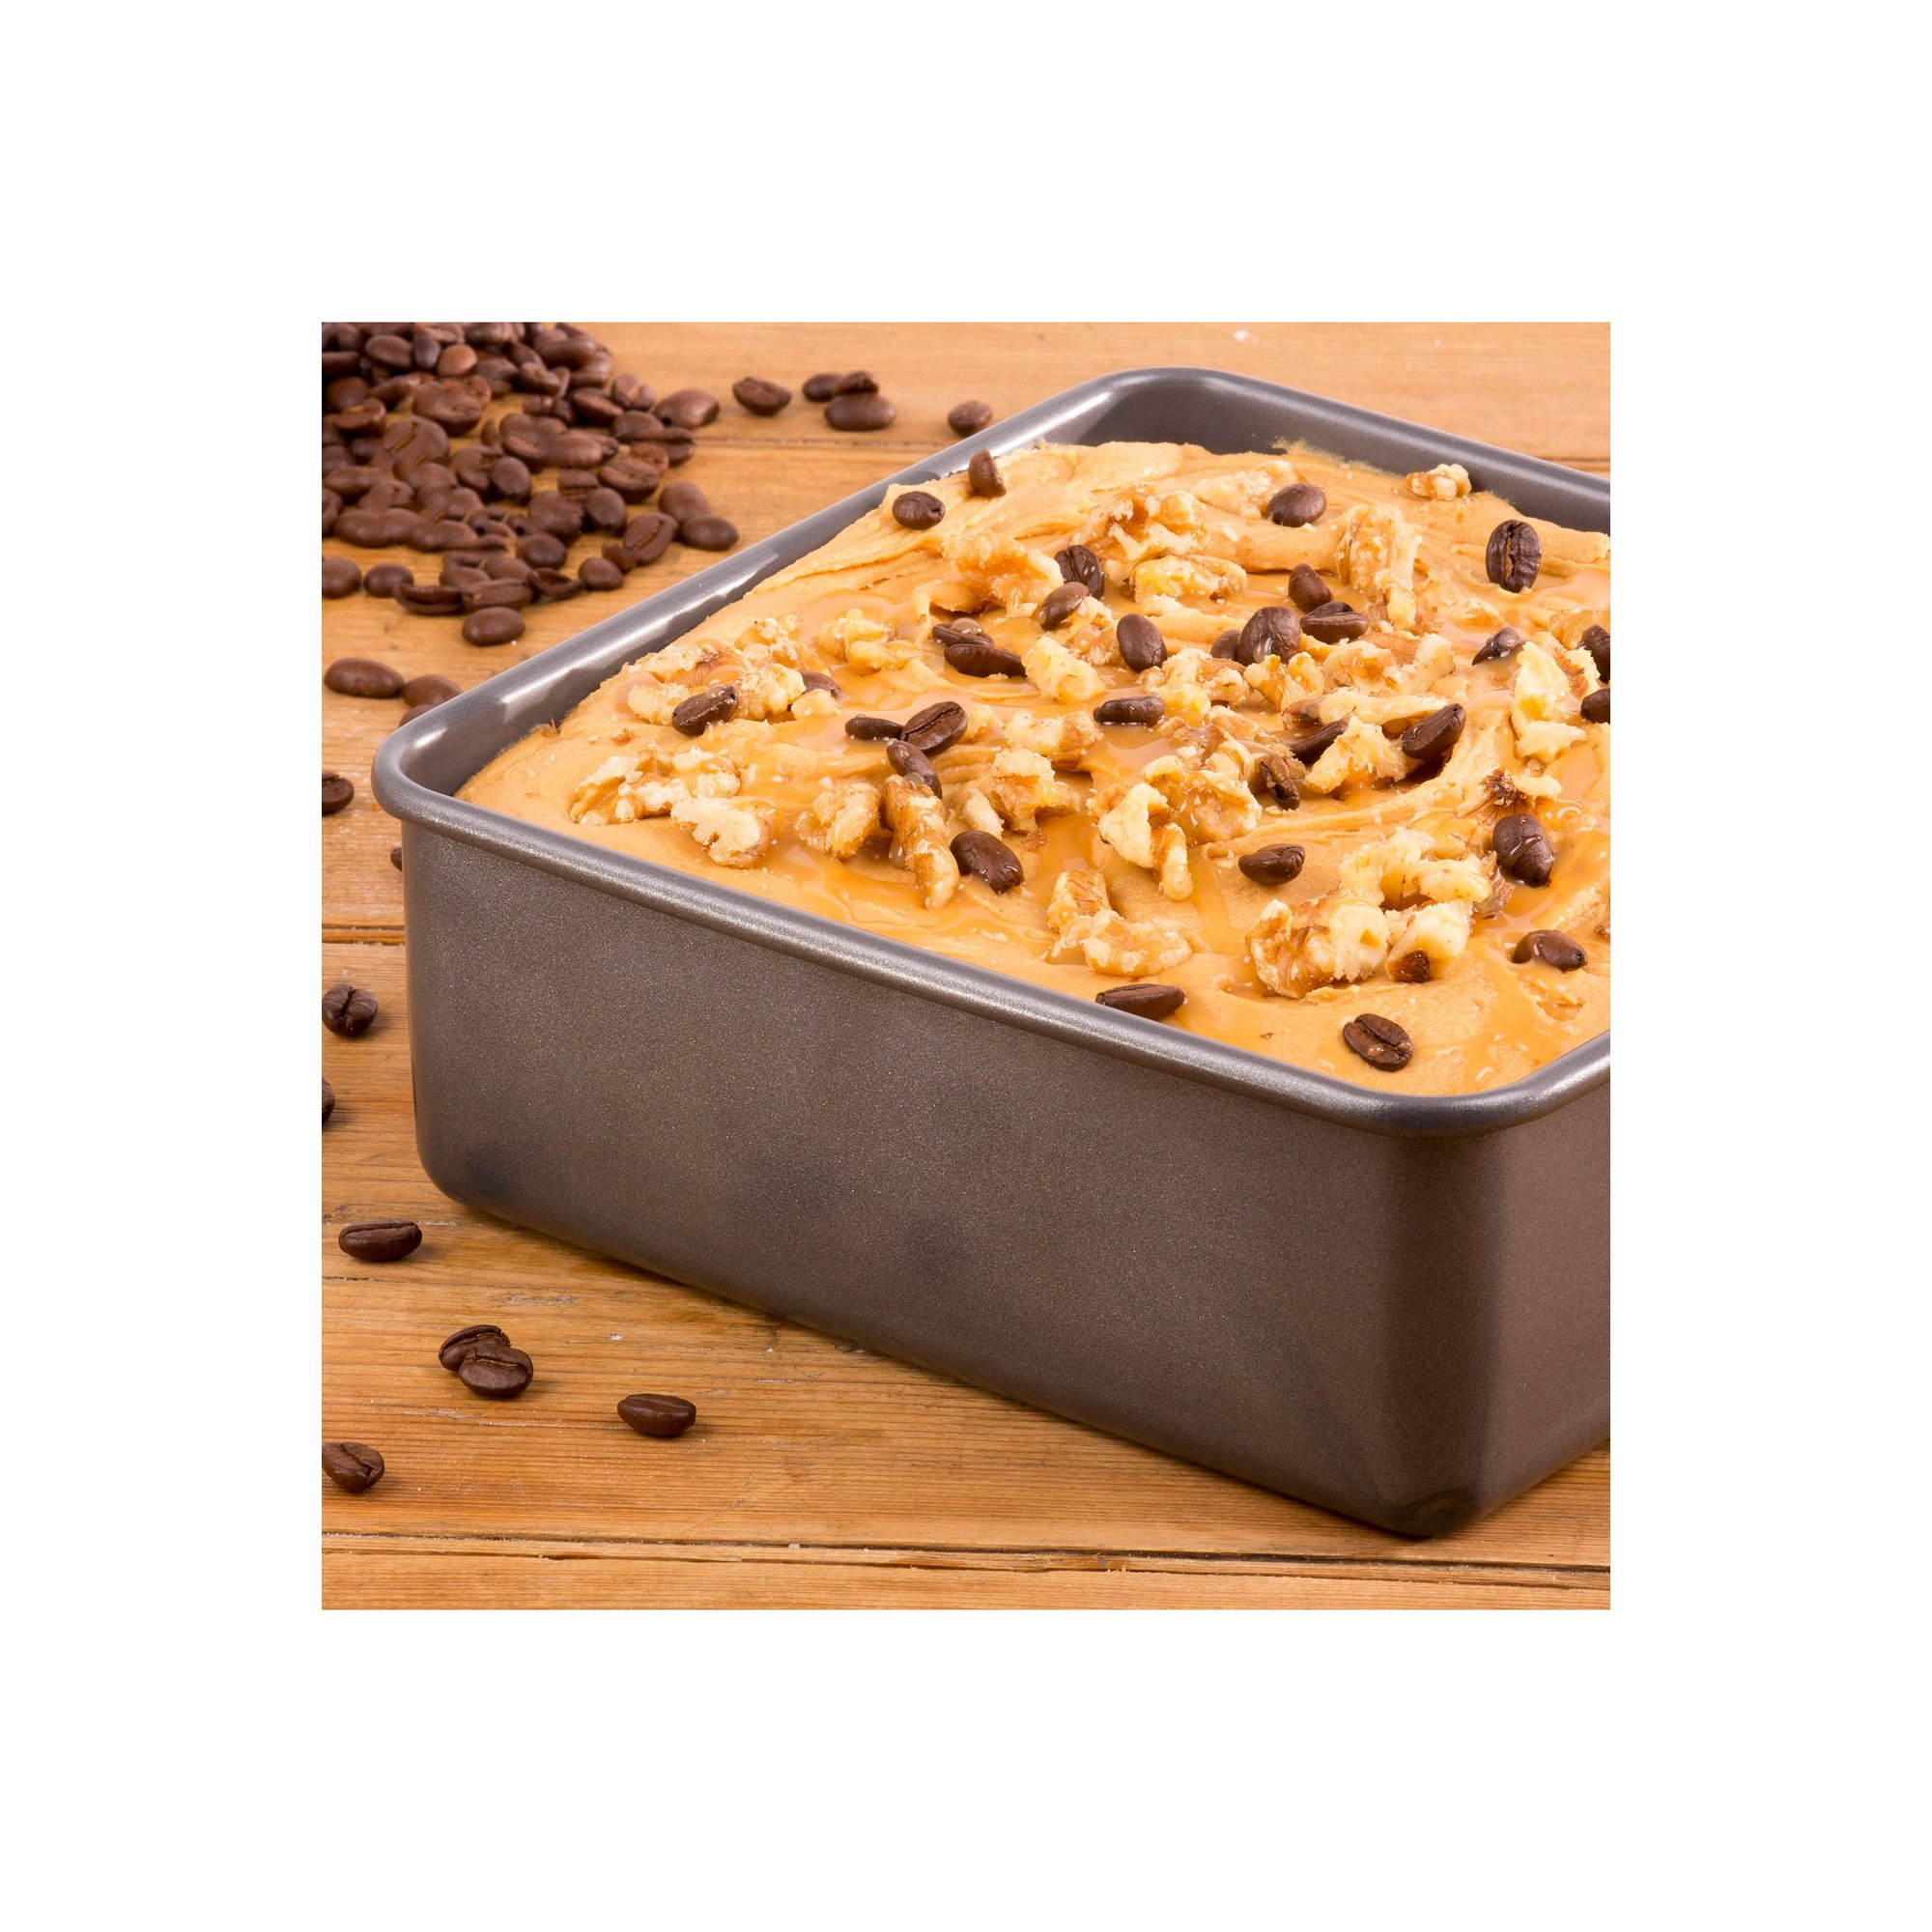 Image of Hairy Bikers 12 Inch Square Cake Pan